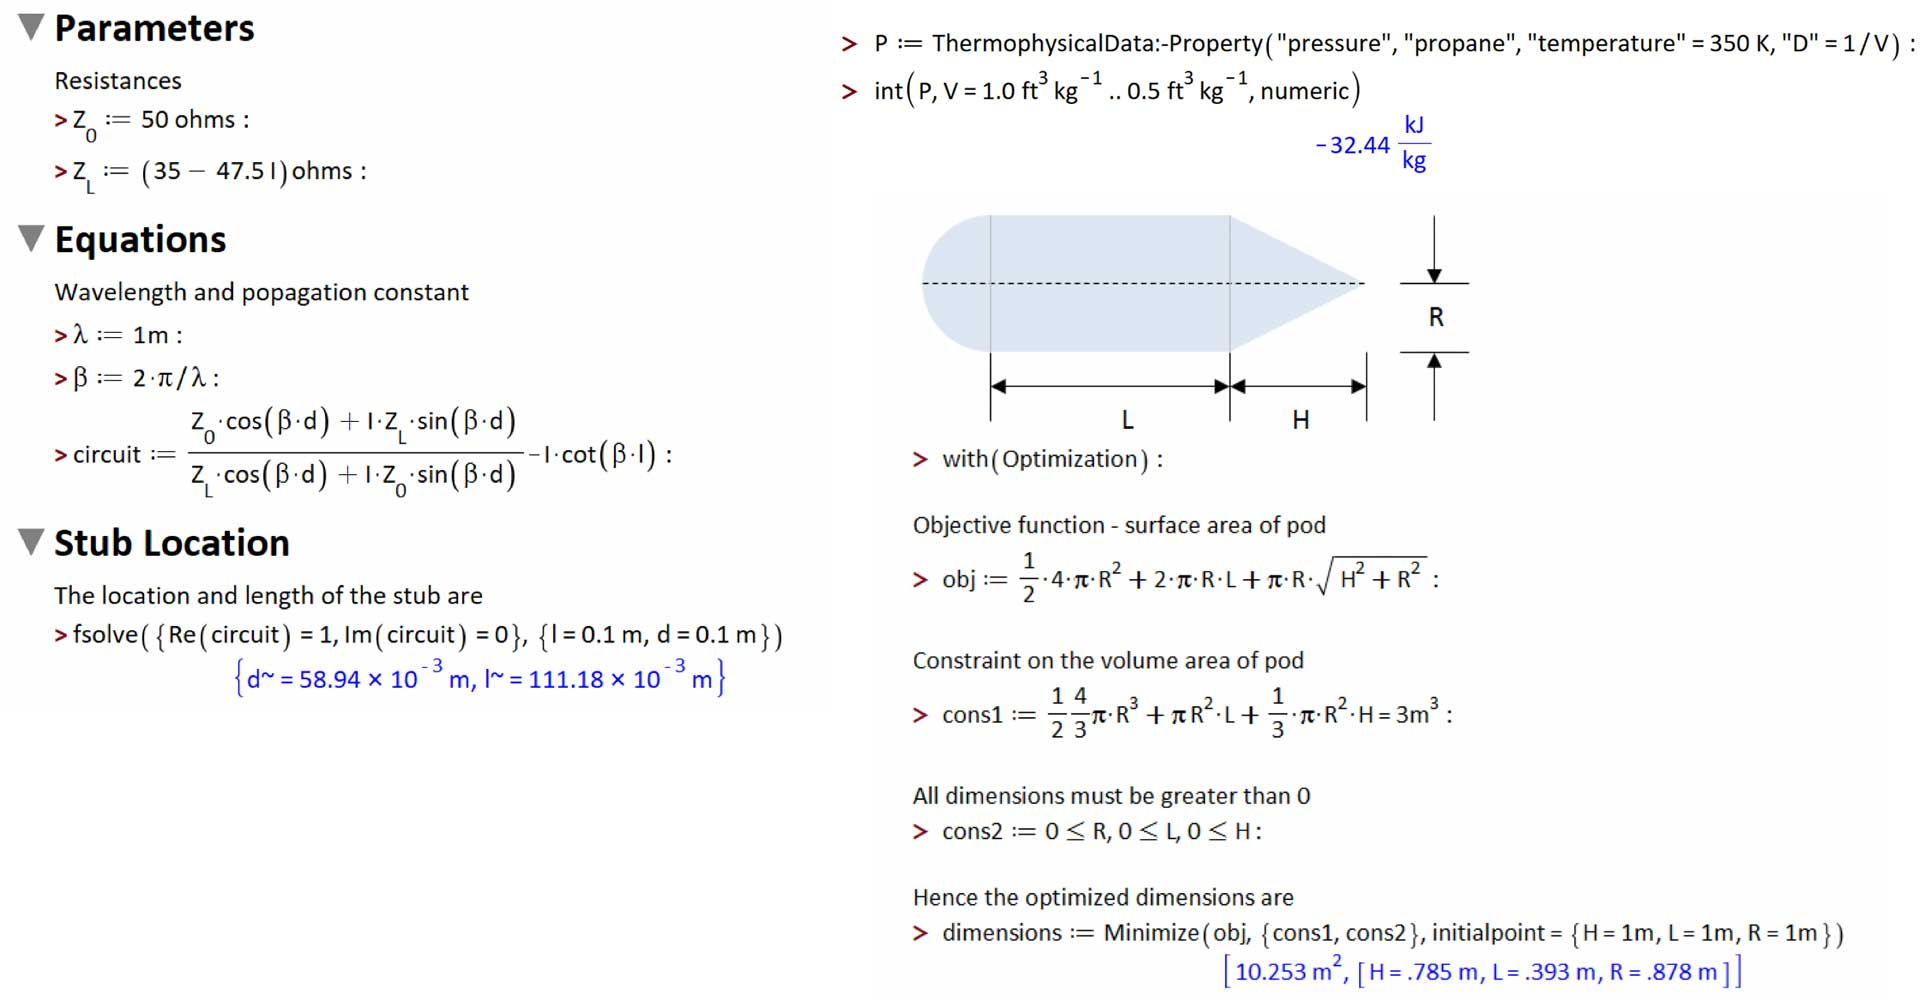 Numerical solution of equations, numerical integration and numerical optimization